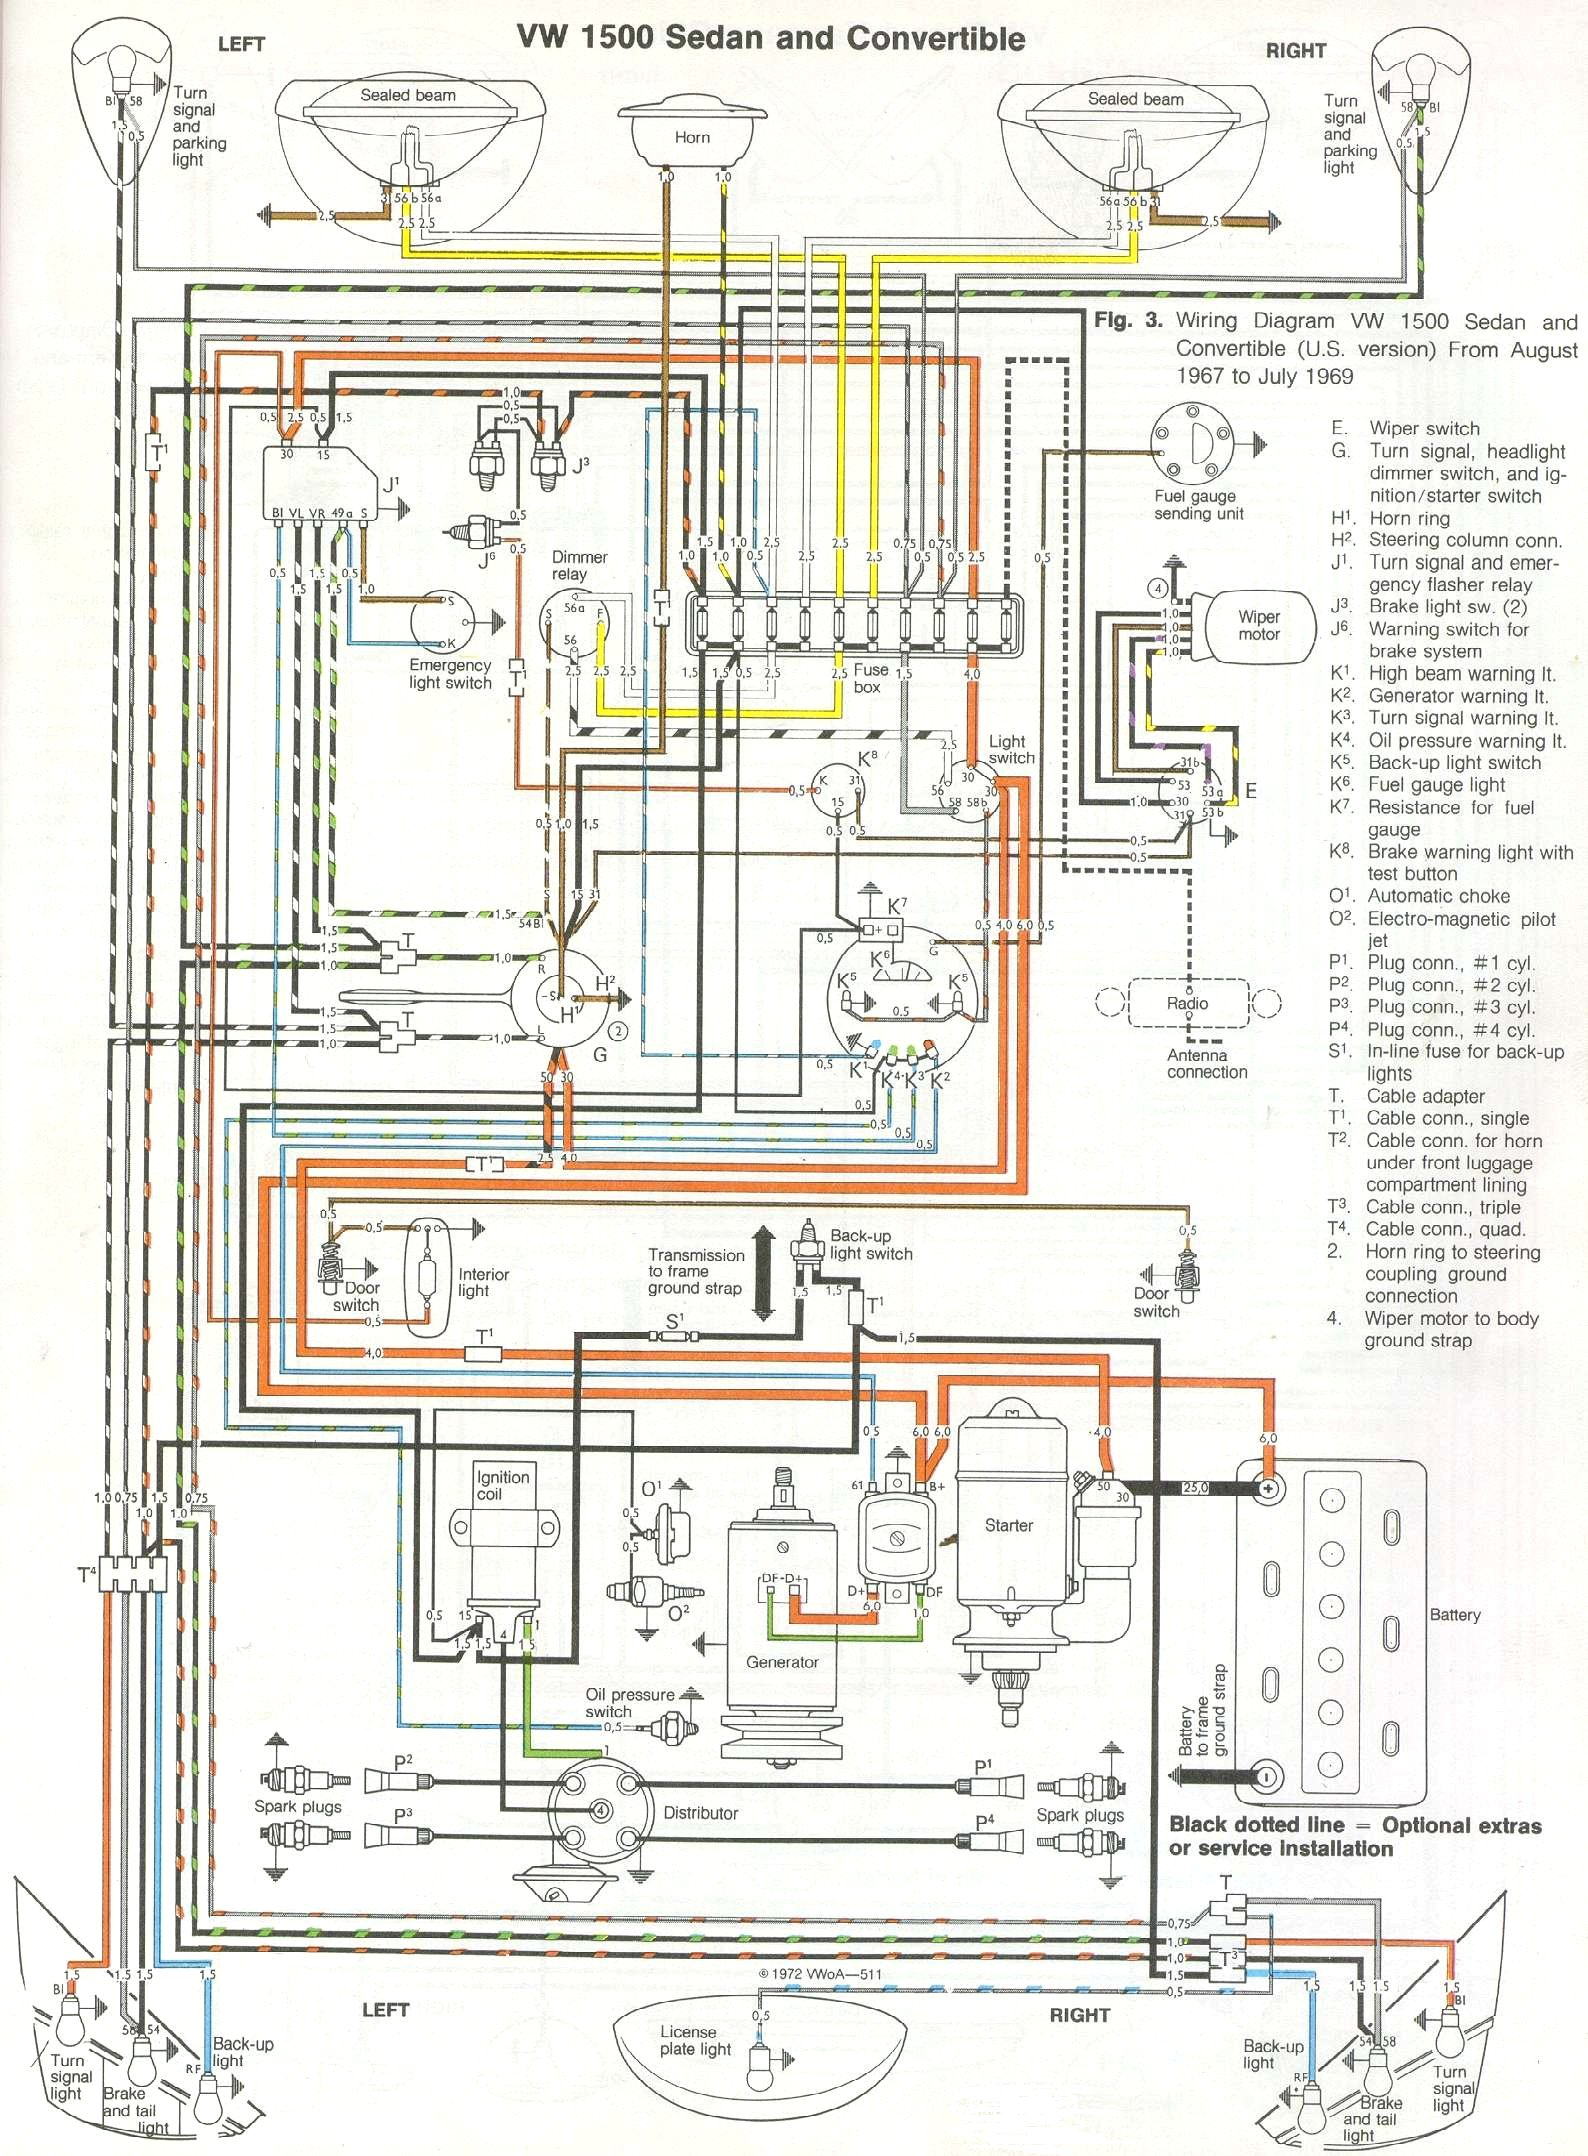 bug_6869 thesamba com type 1 wiring diagrams 1965 vw beetle wiring diagram at nearapp.co